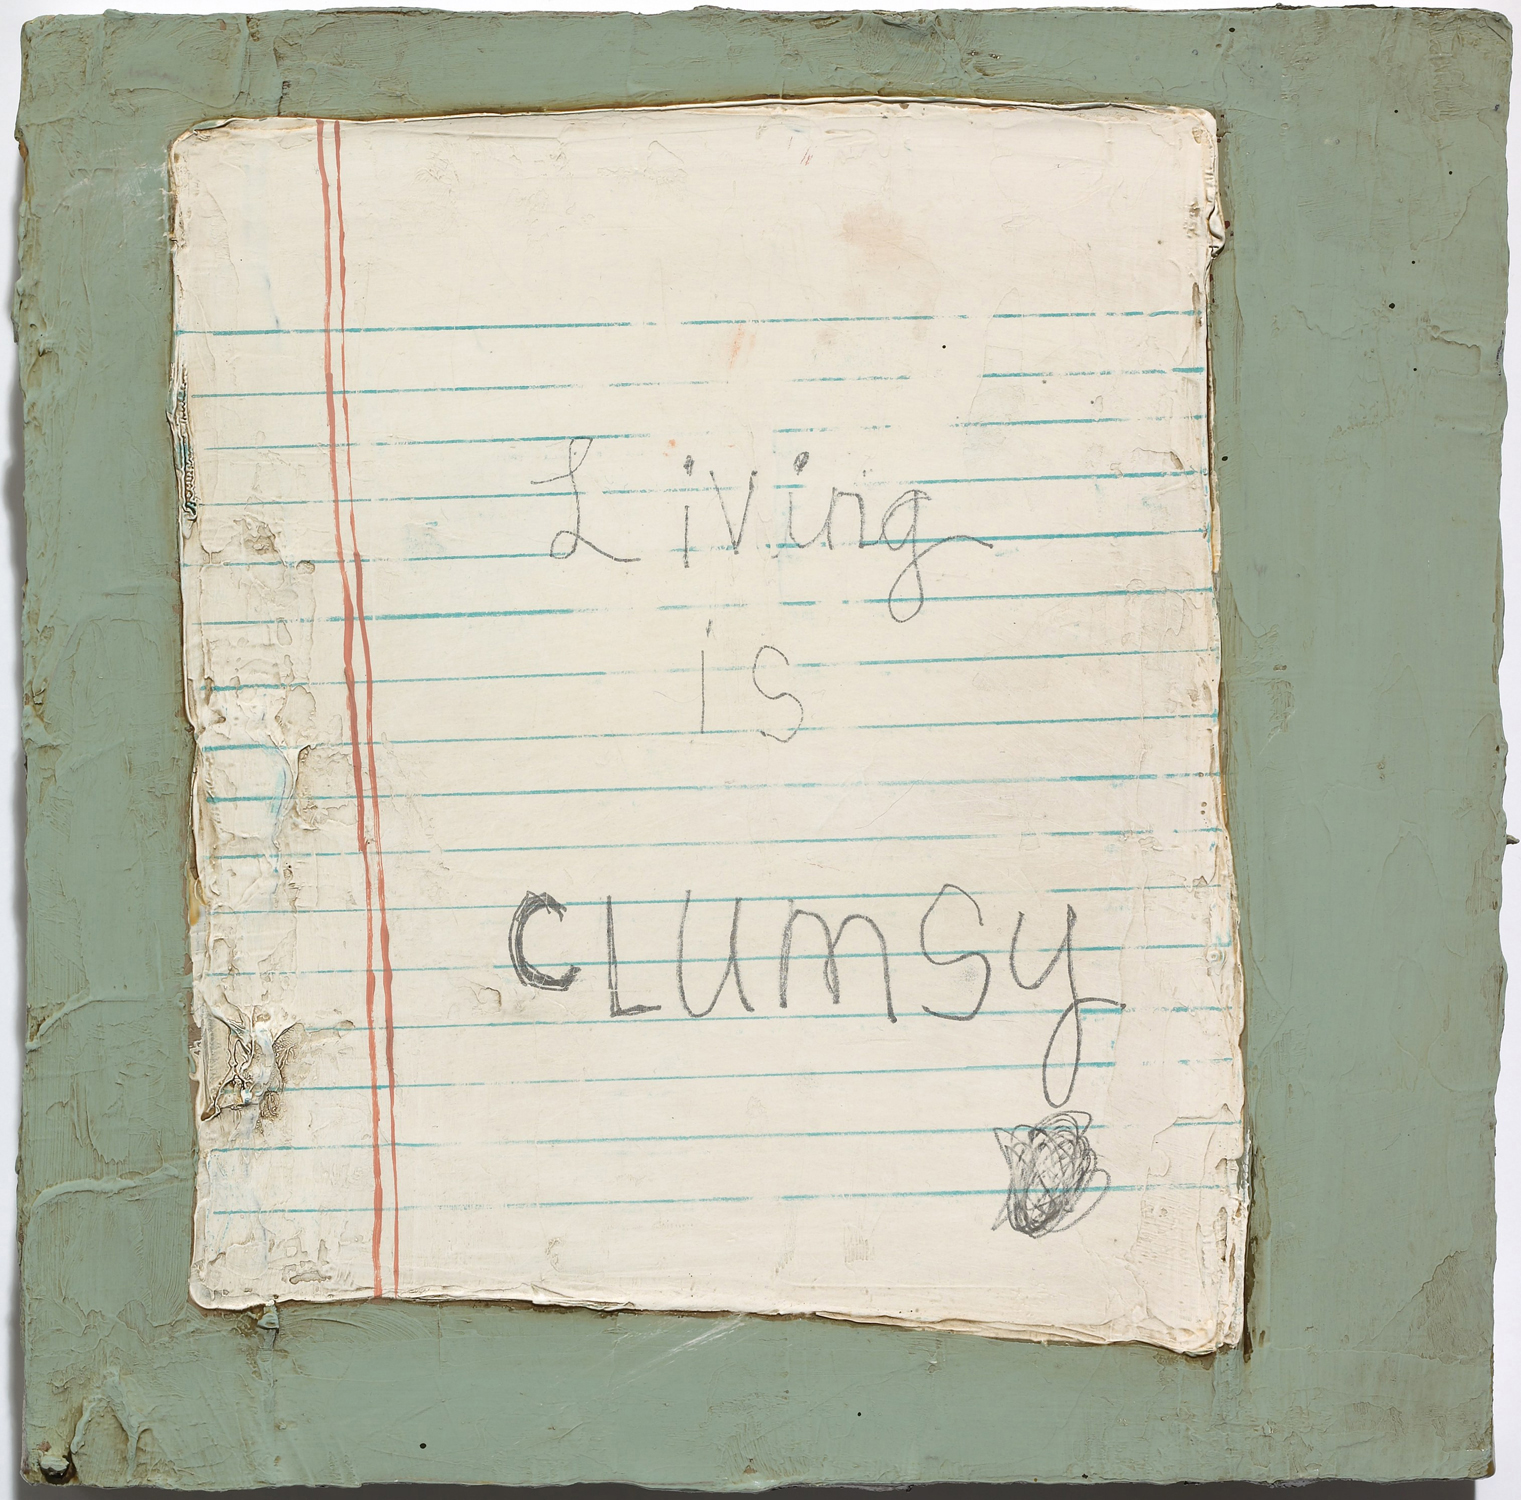 Squeak Carnwath   Clumsy , 2009 oil and alkyd on canvas 10 x 10 inches 25.4 x 25.4 cm